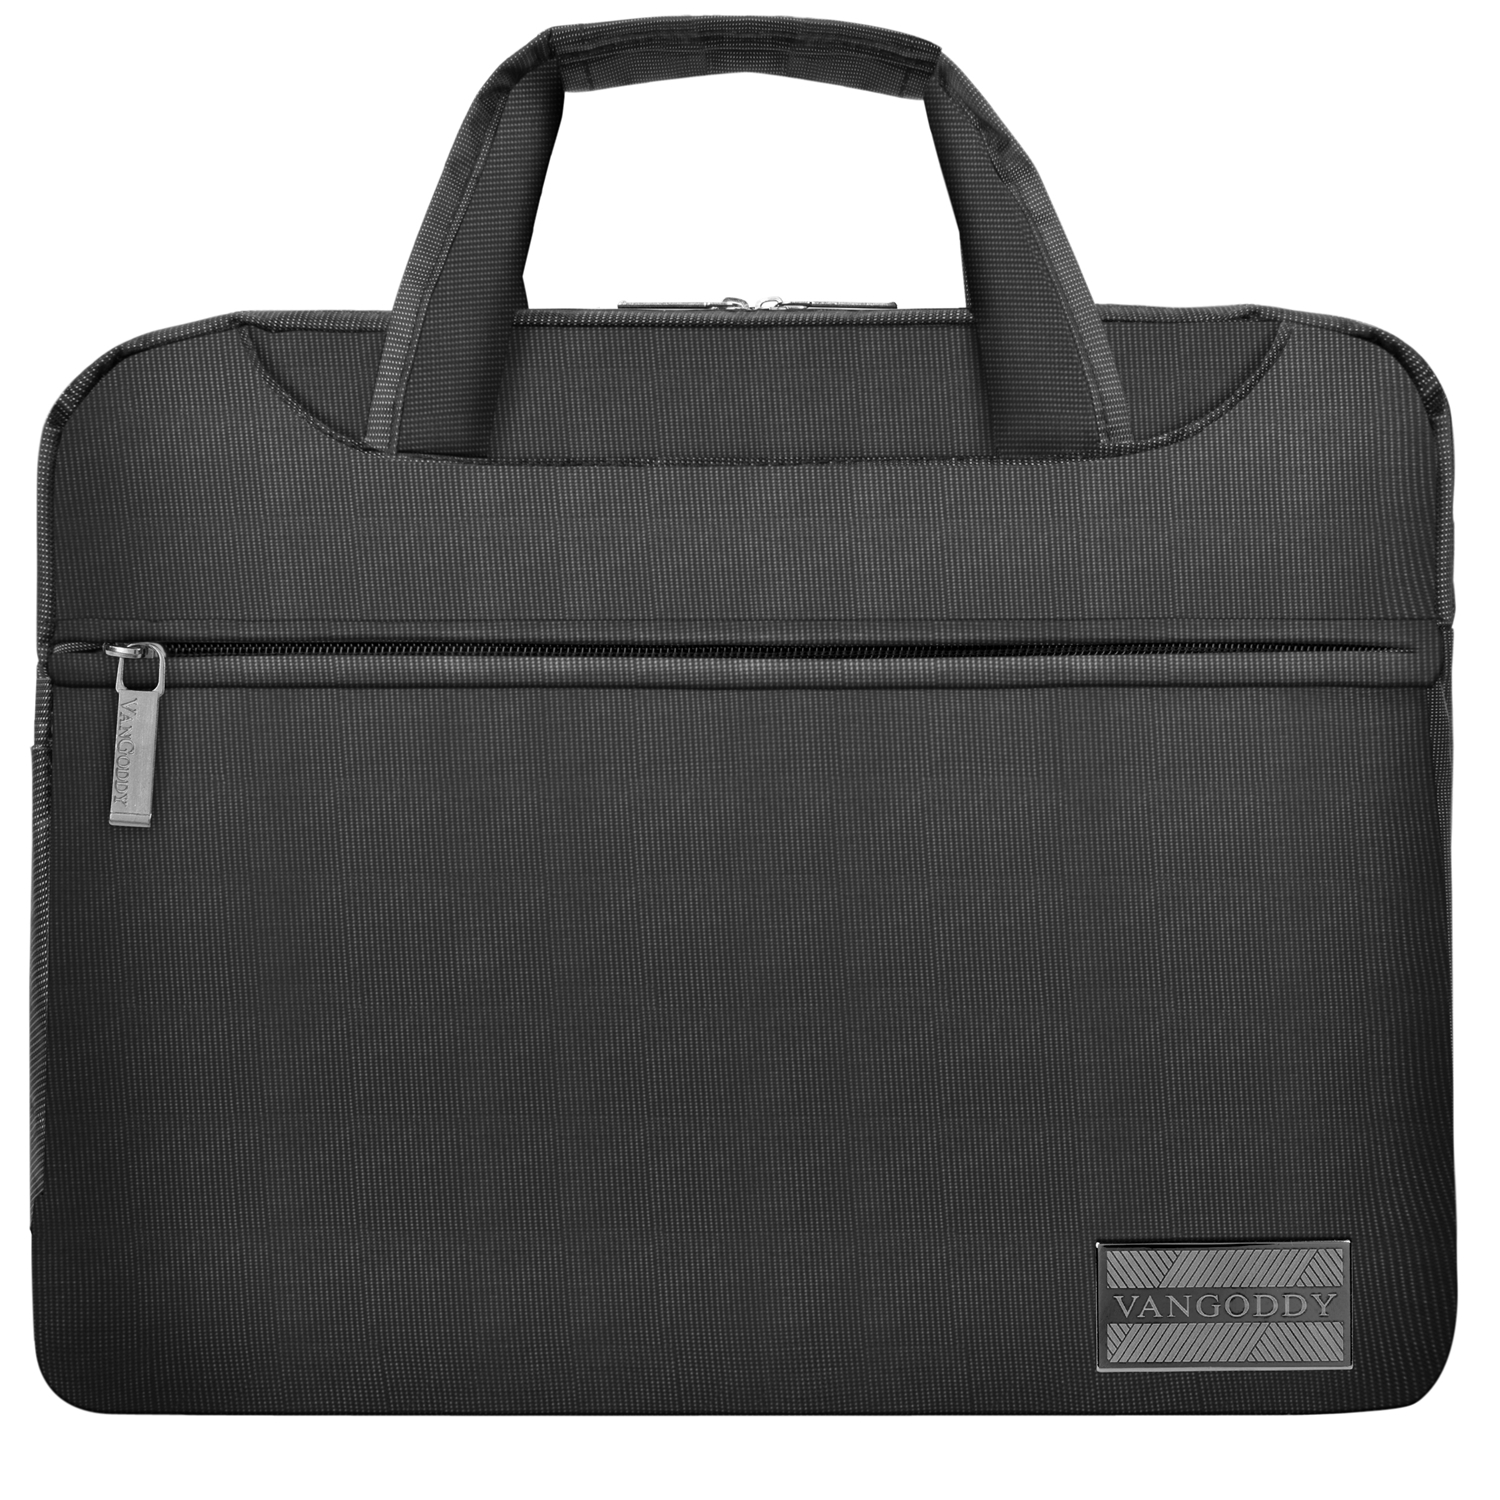 """VANGODDY NineO Premium Student, Business, Travel Messenger Bag fits 11"""" - 12"""" Lenovo Laptops or Tablets up to 11.5 x 9.5 Inches"""